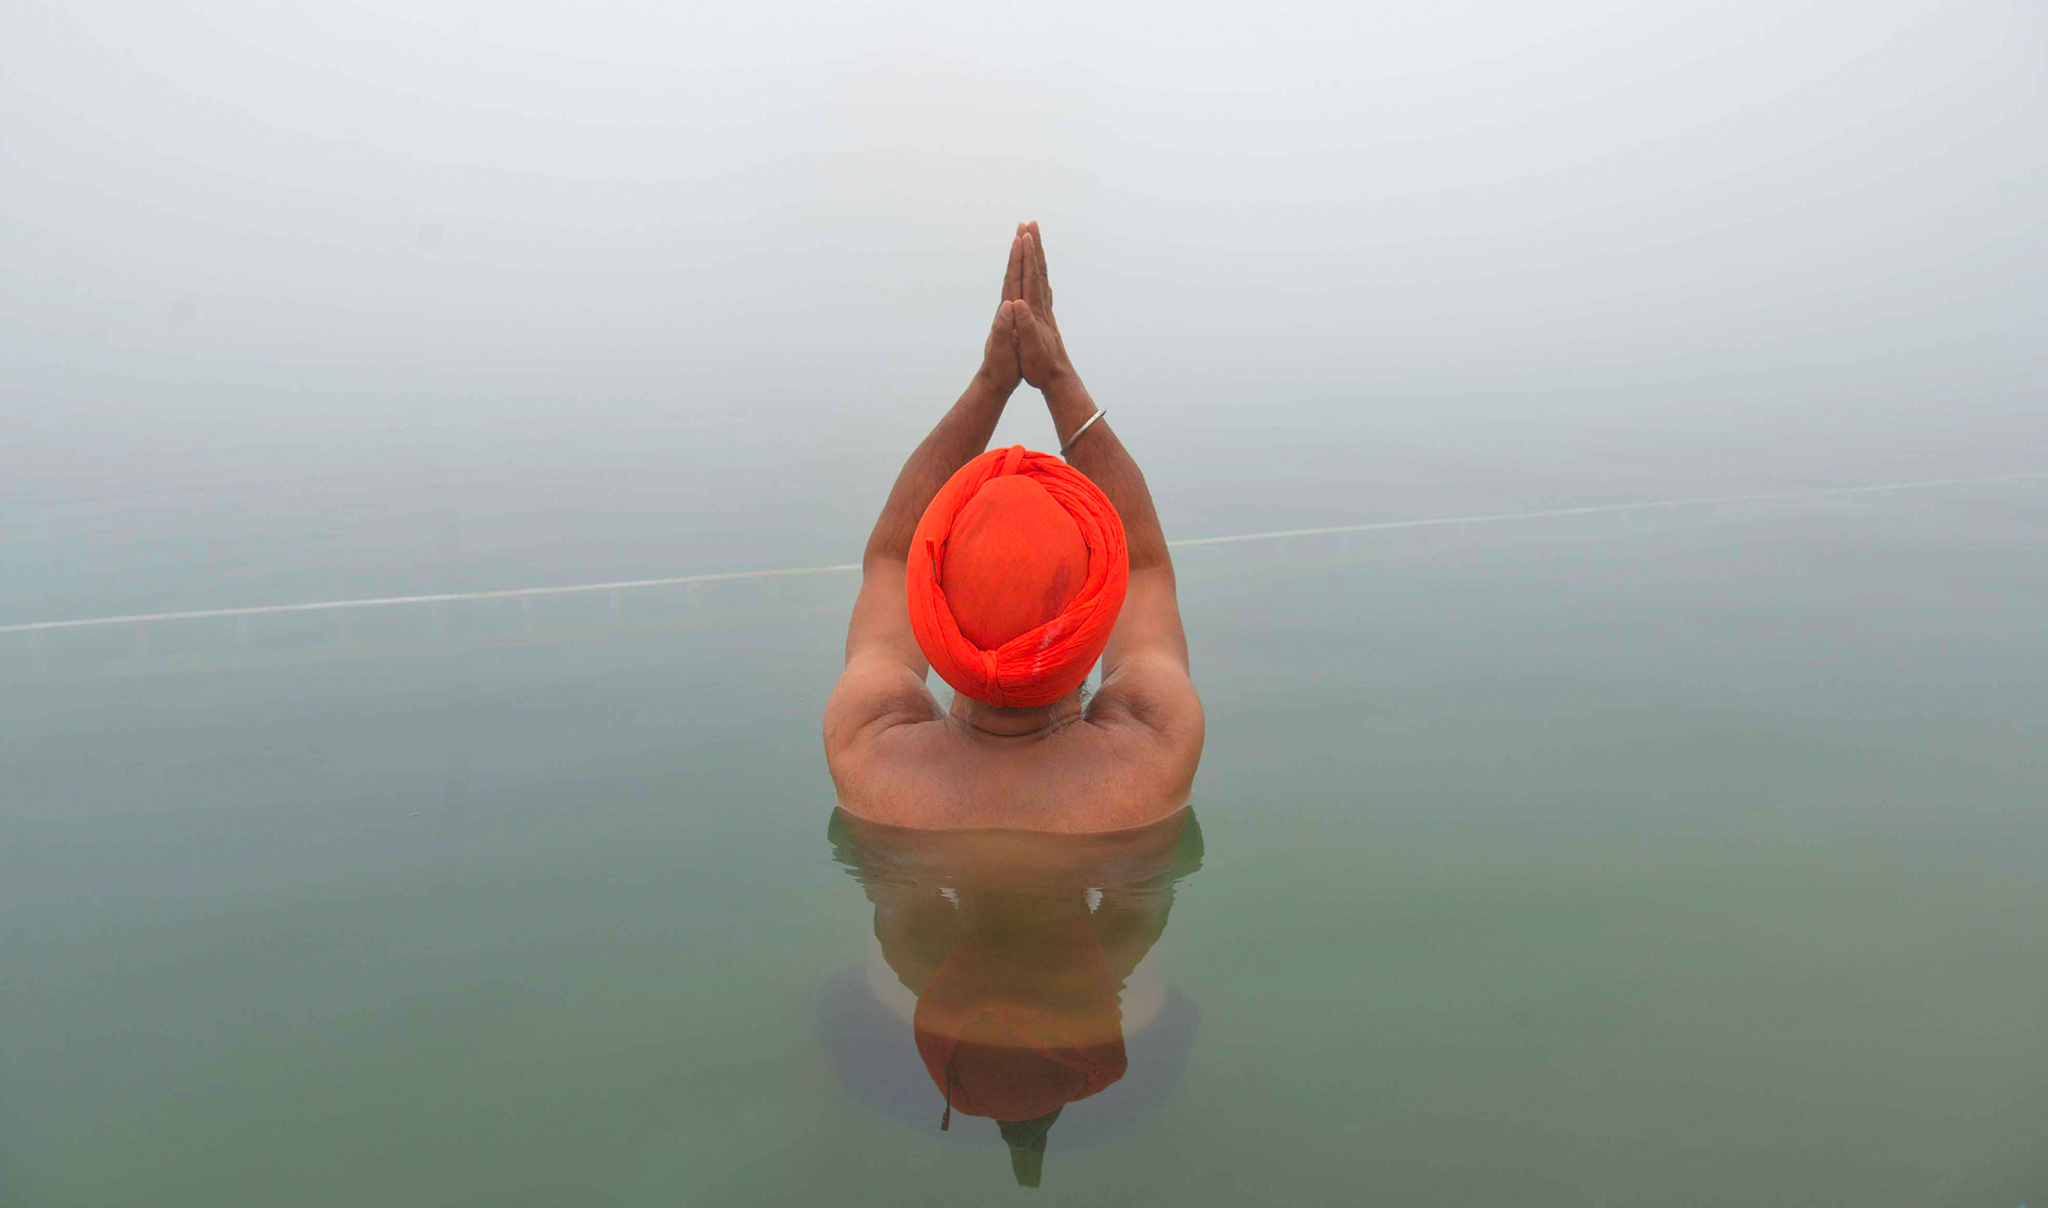 An Indian Sikh devotee takes a dip in the holy sarovar (water tank) during dense fog at the Golden Temple in Amritsar on December 9, 2016. / AFP PHOTO / Narinder NANUNARINDER NANU/AFP/Getty Images